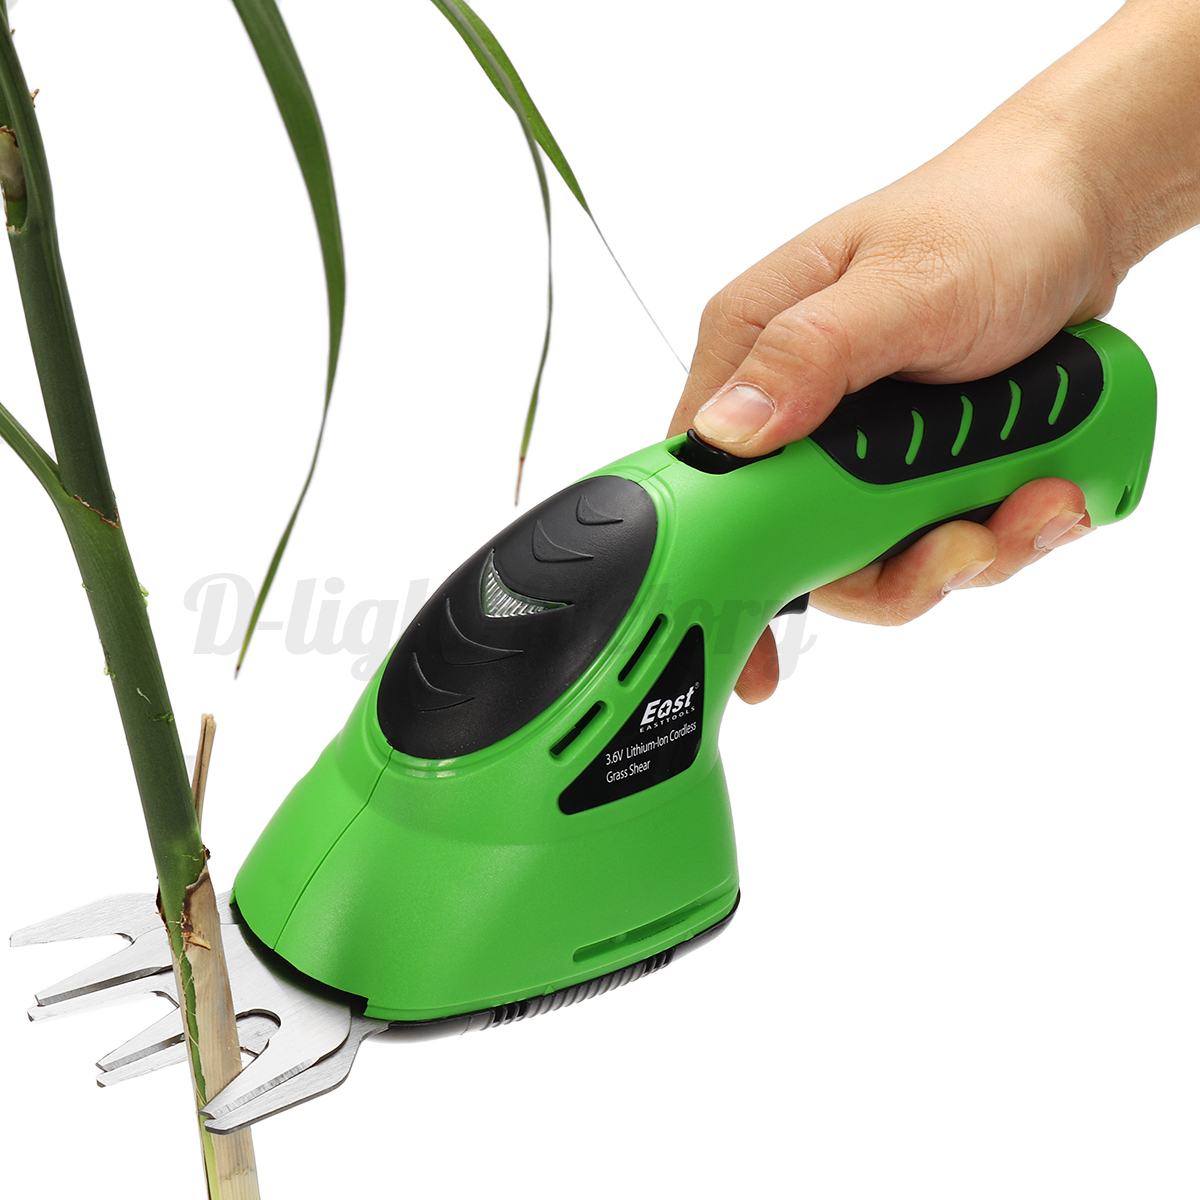 Cordless-Grass-Shear-Lawnmower-Garden-Pruning-Hedge-Trimmer-Rod-Wheel-Holder thumbnail 7